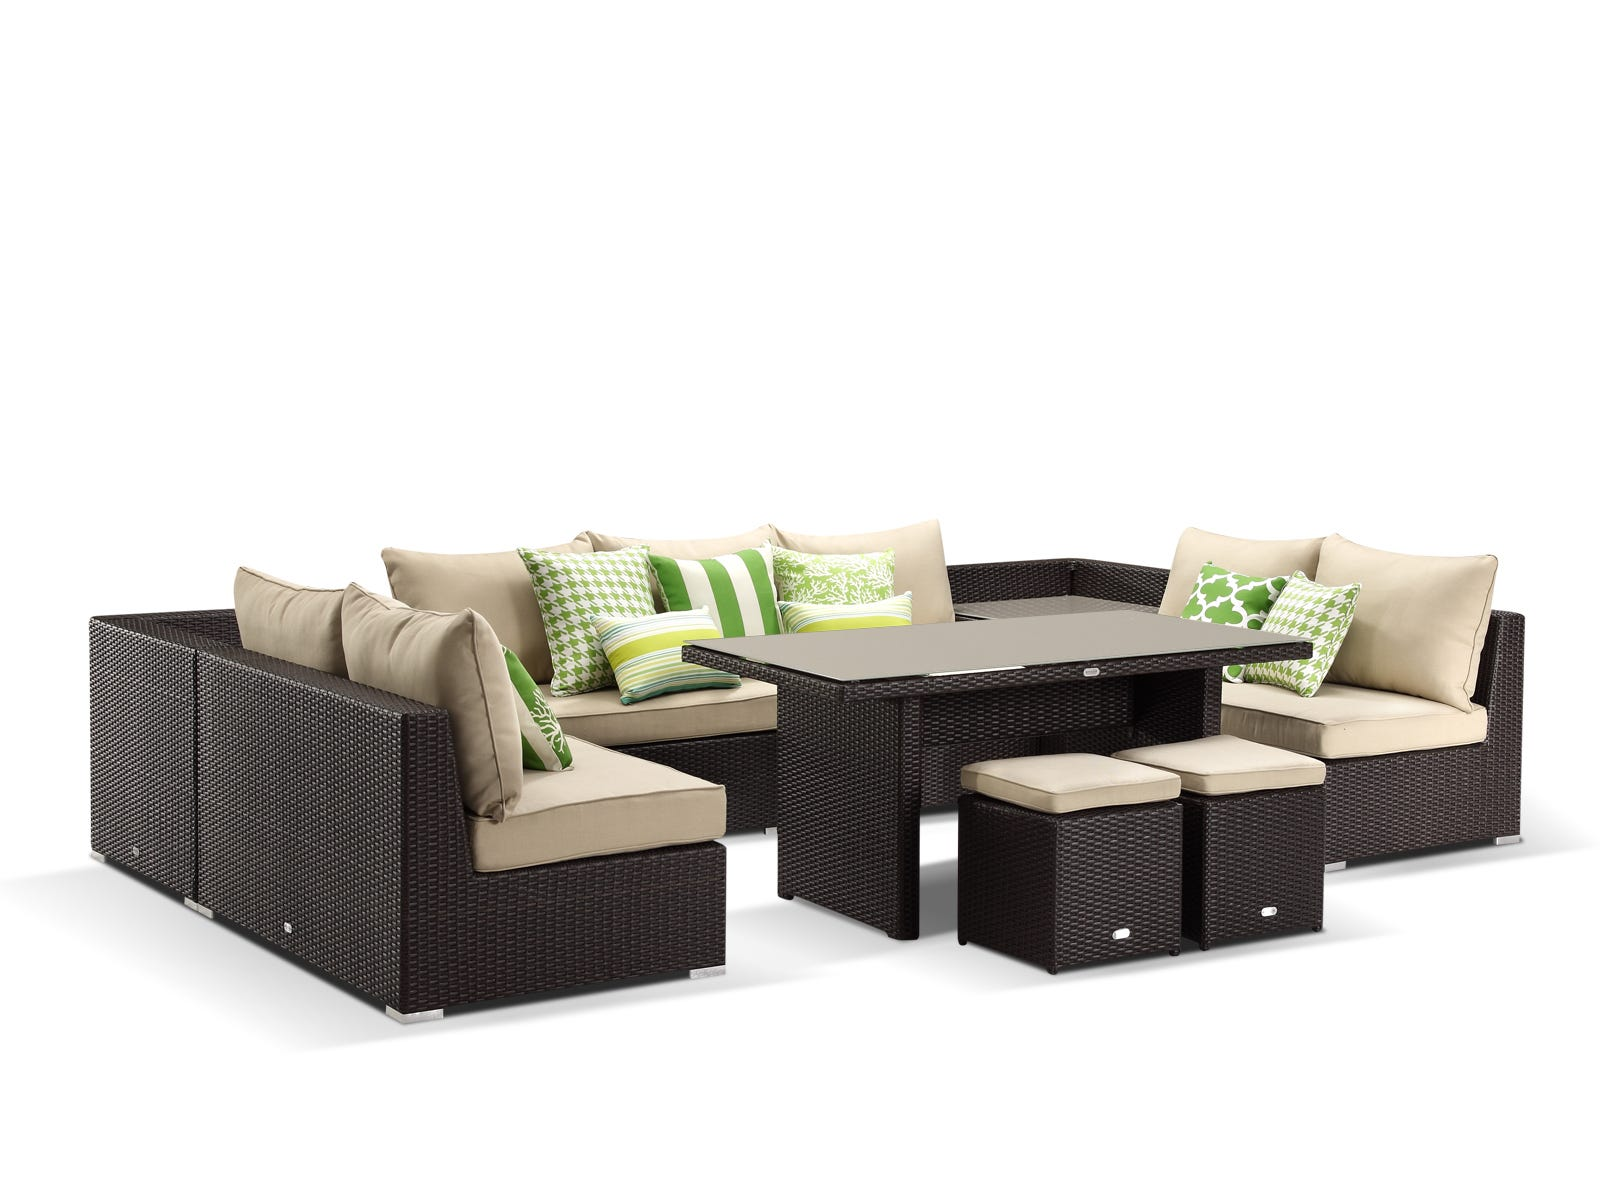 Outdoor furniture evolution dining out in comfort for Outdoor furniture images